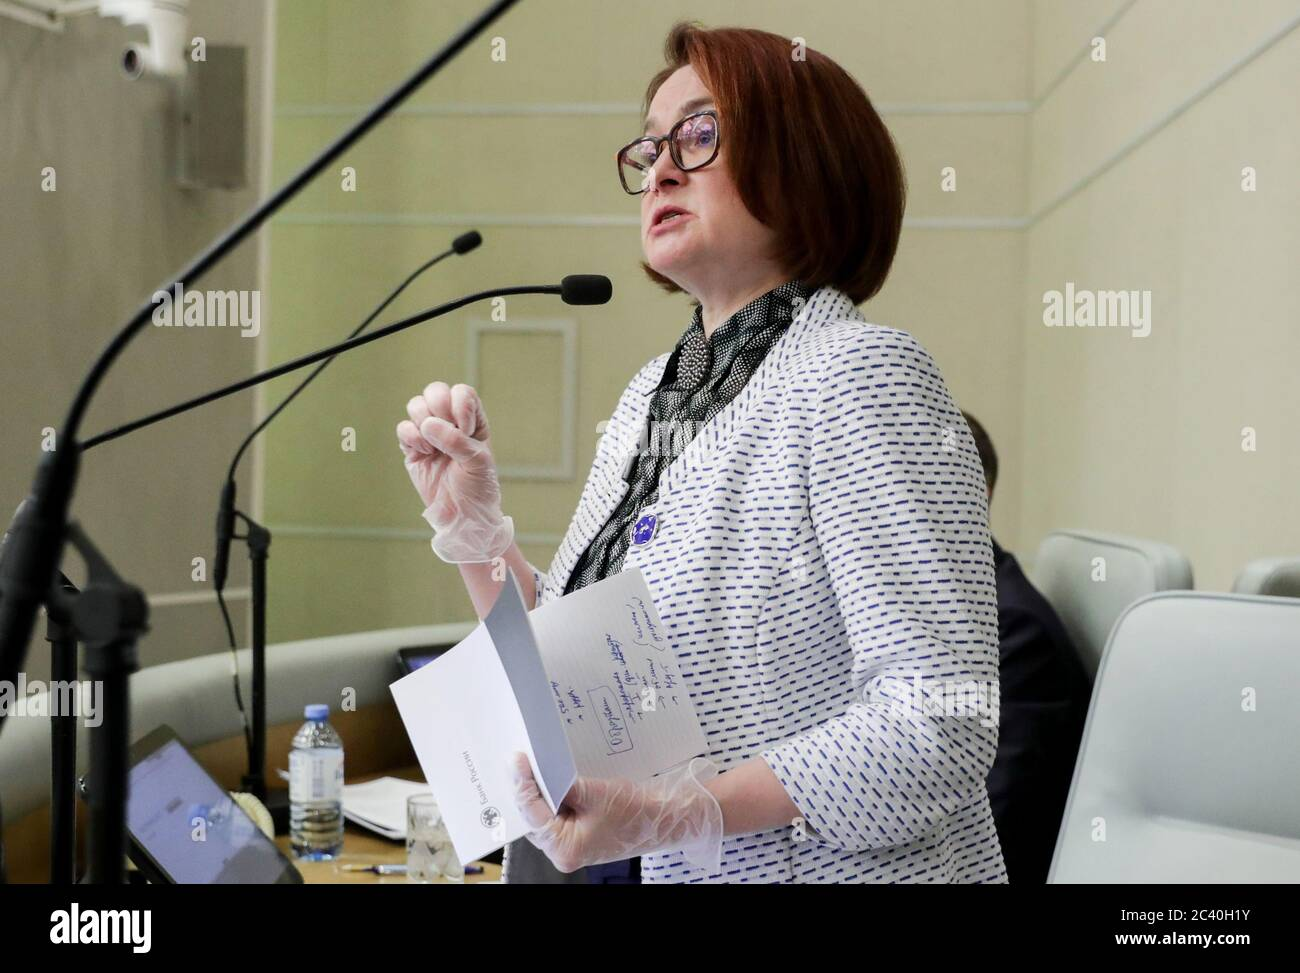 Moscow, Russia. 23rd June, 2020. Central Bank Governor Elvira Nabiullina speaks during a plenary meeting of the Russian State Duma. Credit: Russian State Duma Photo Service/TASS/Alamy Live News Stock Photo